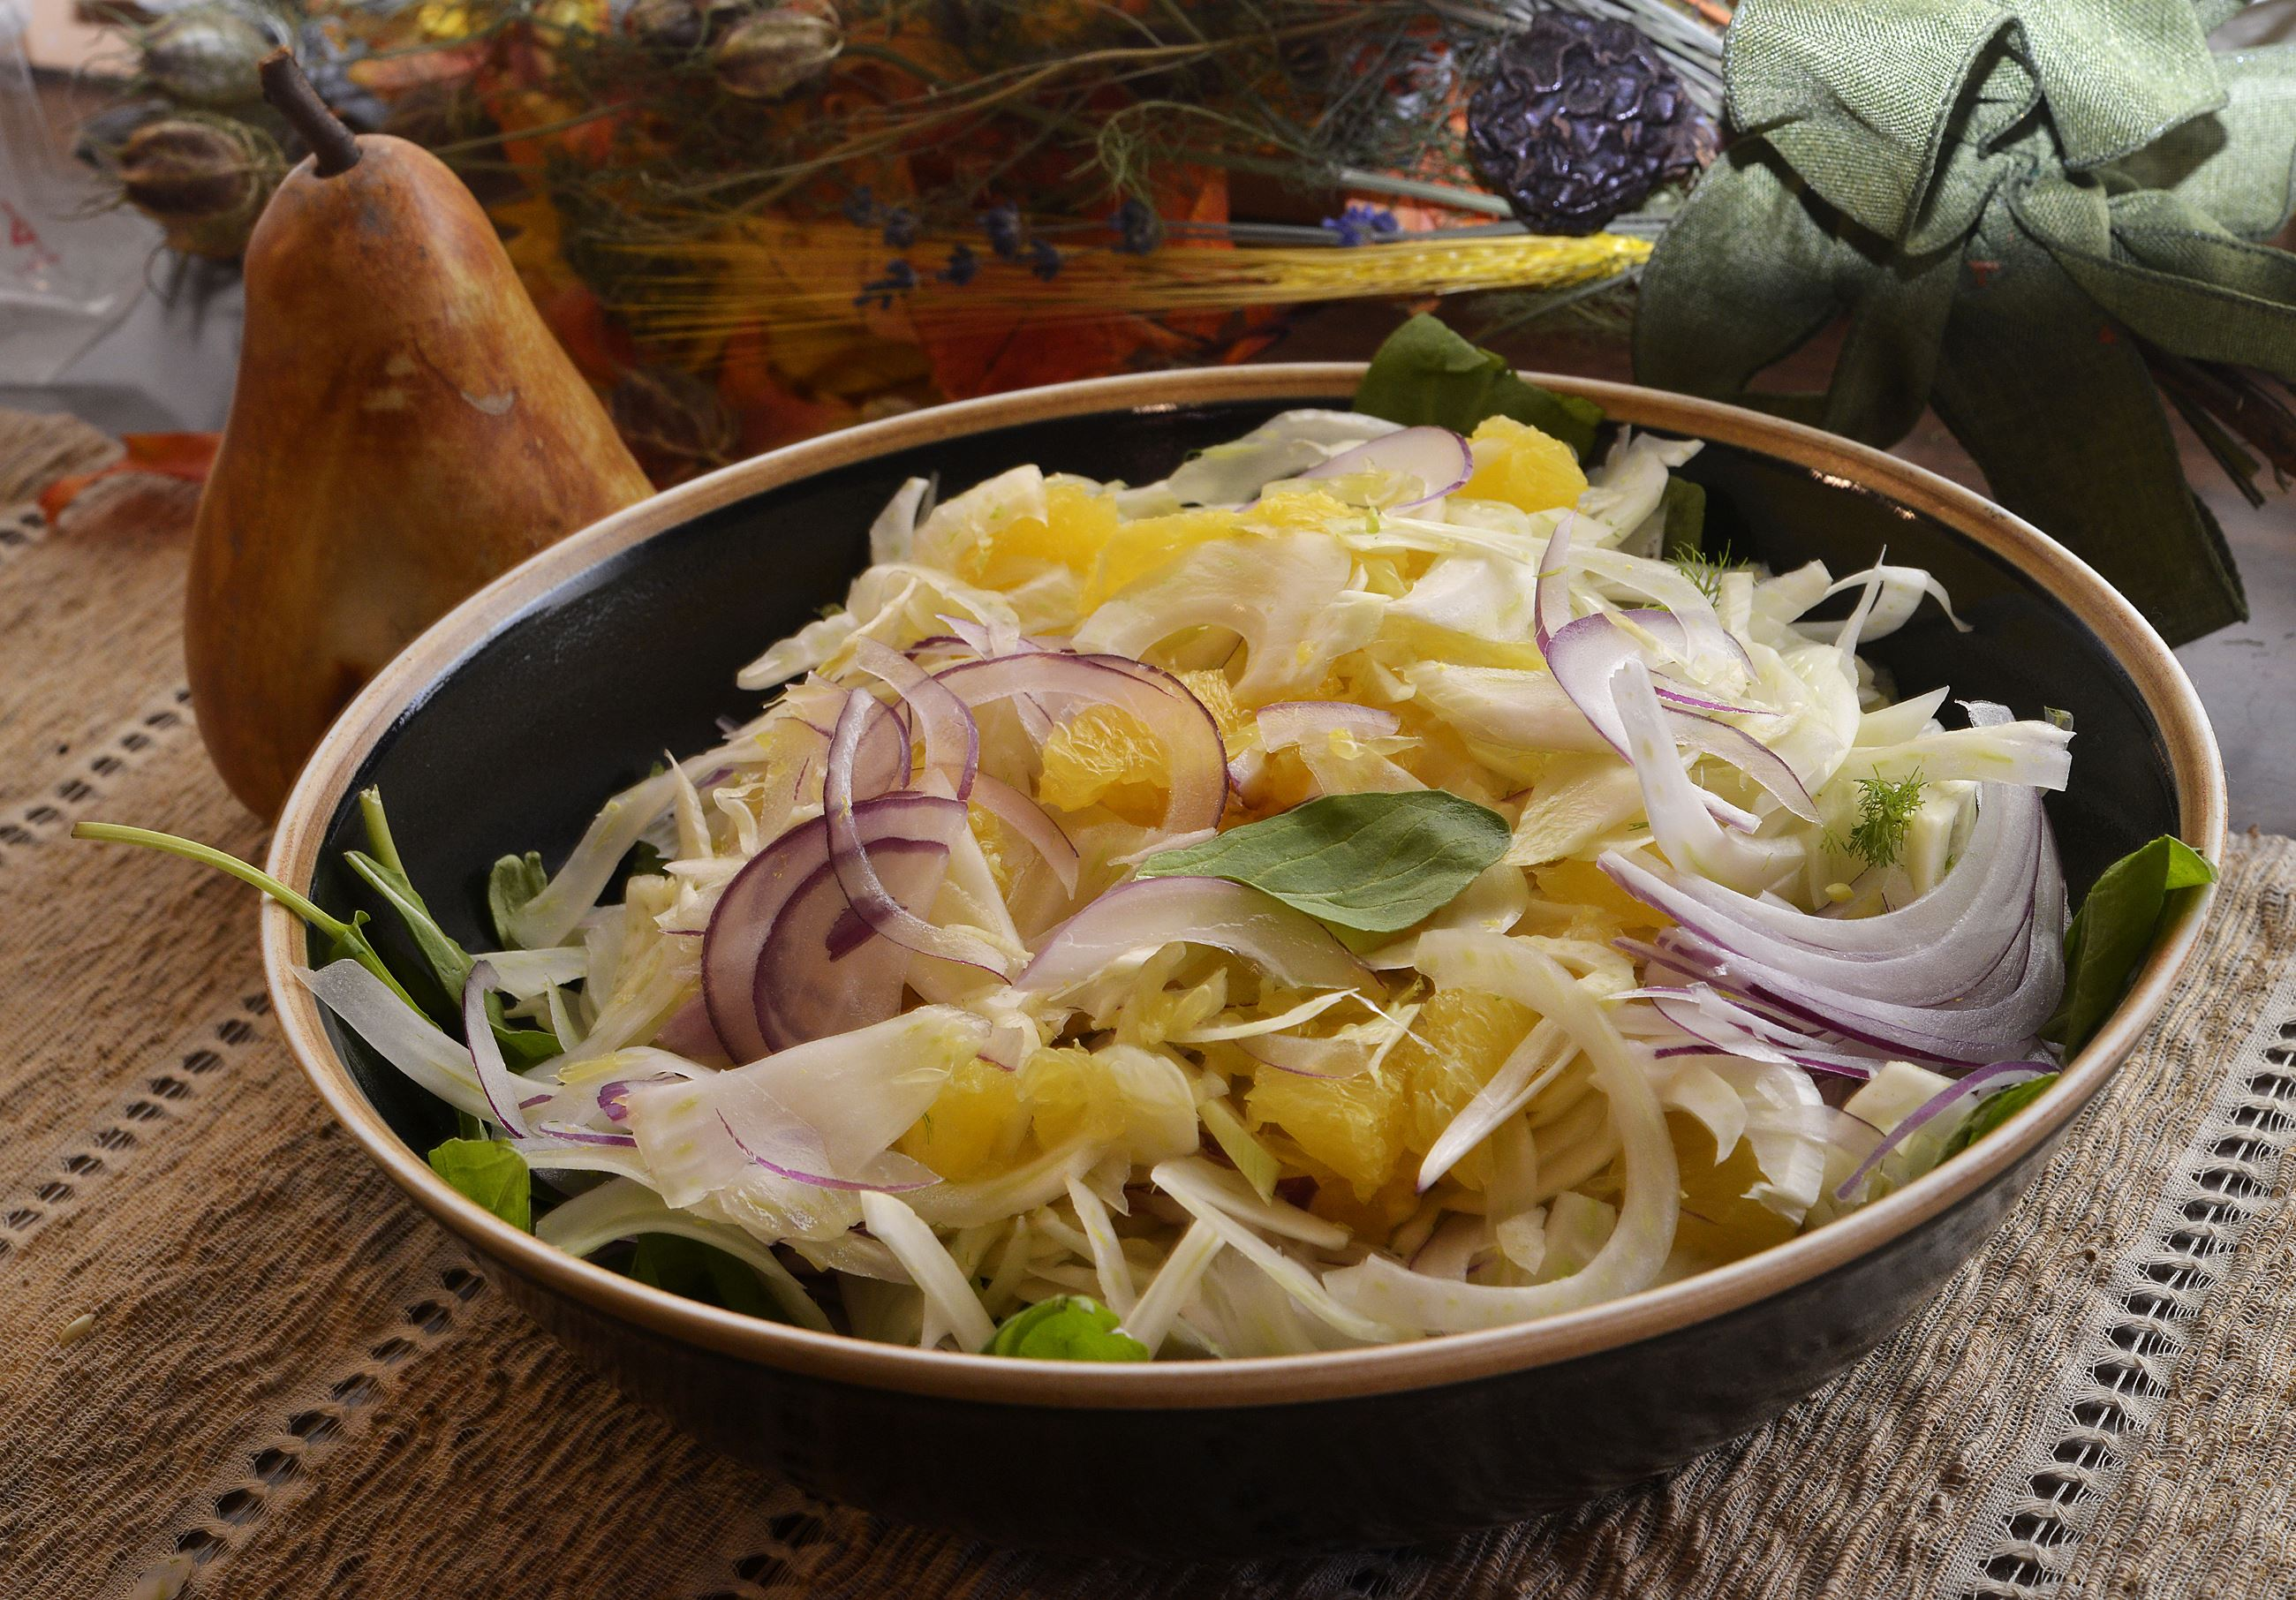 20141117lrherbfood01 Fennel, orange and onion salad.